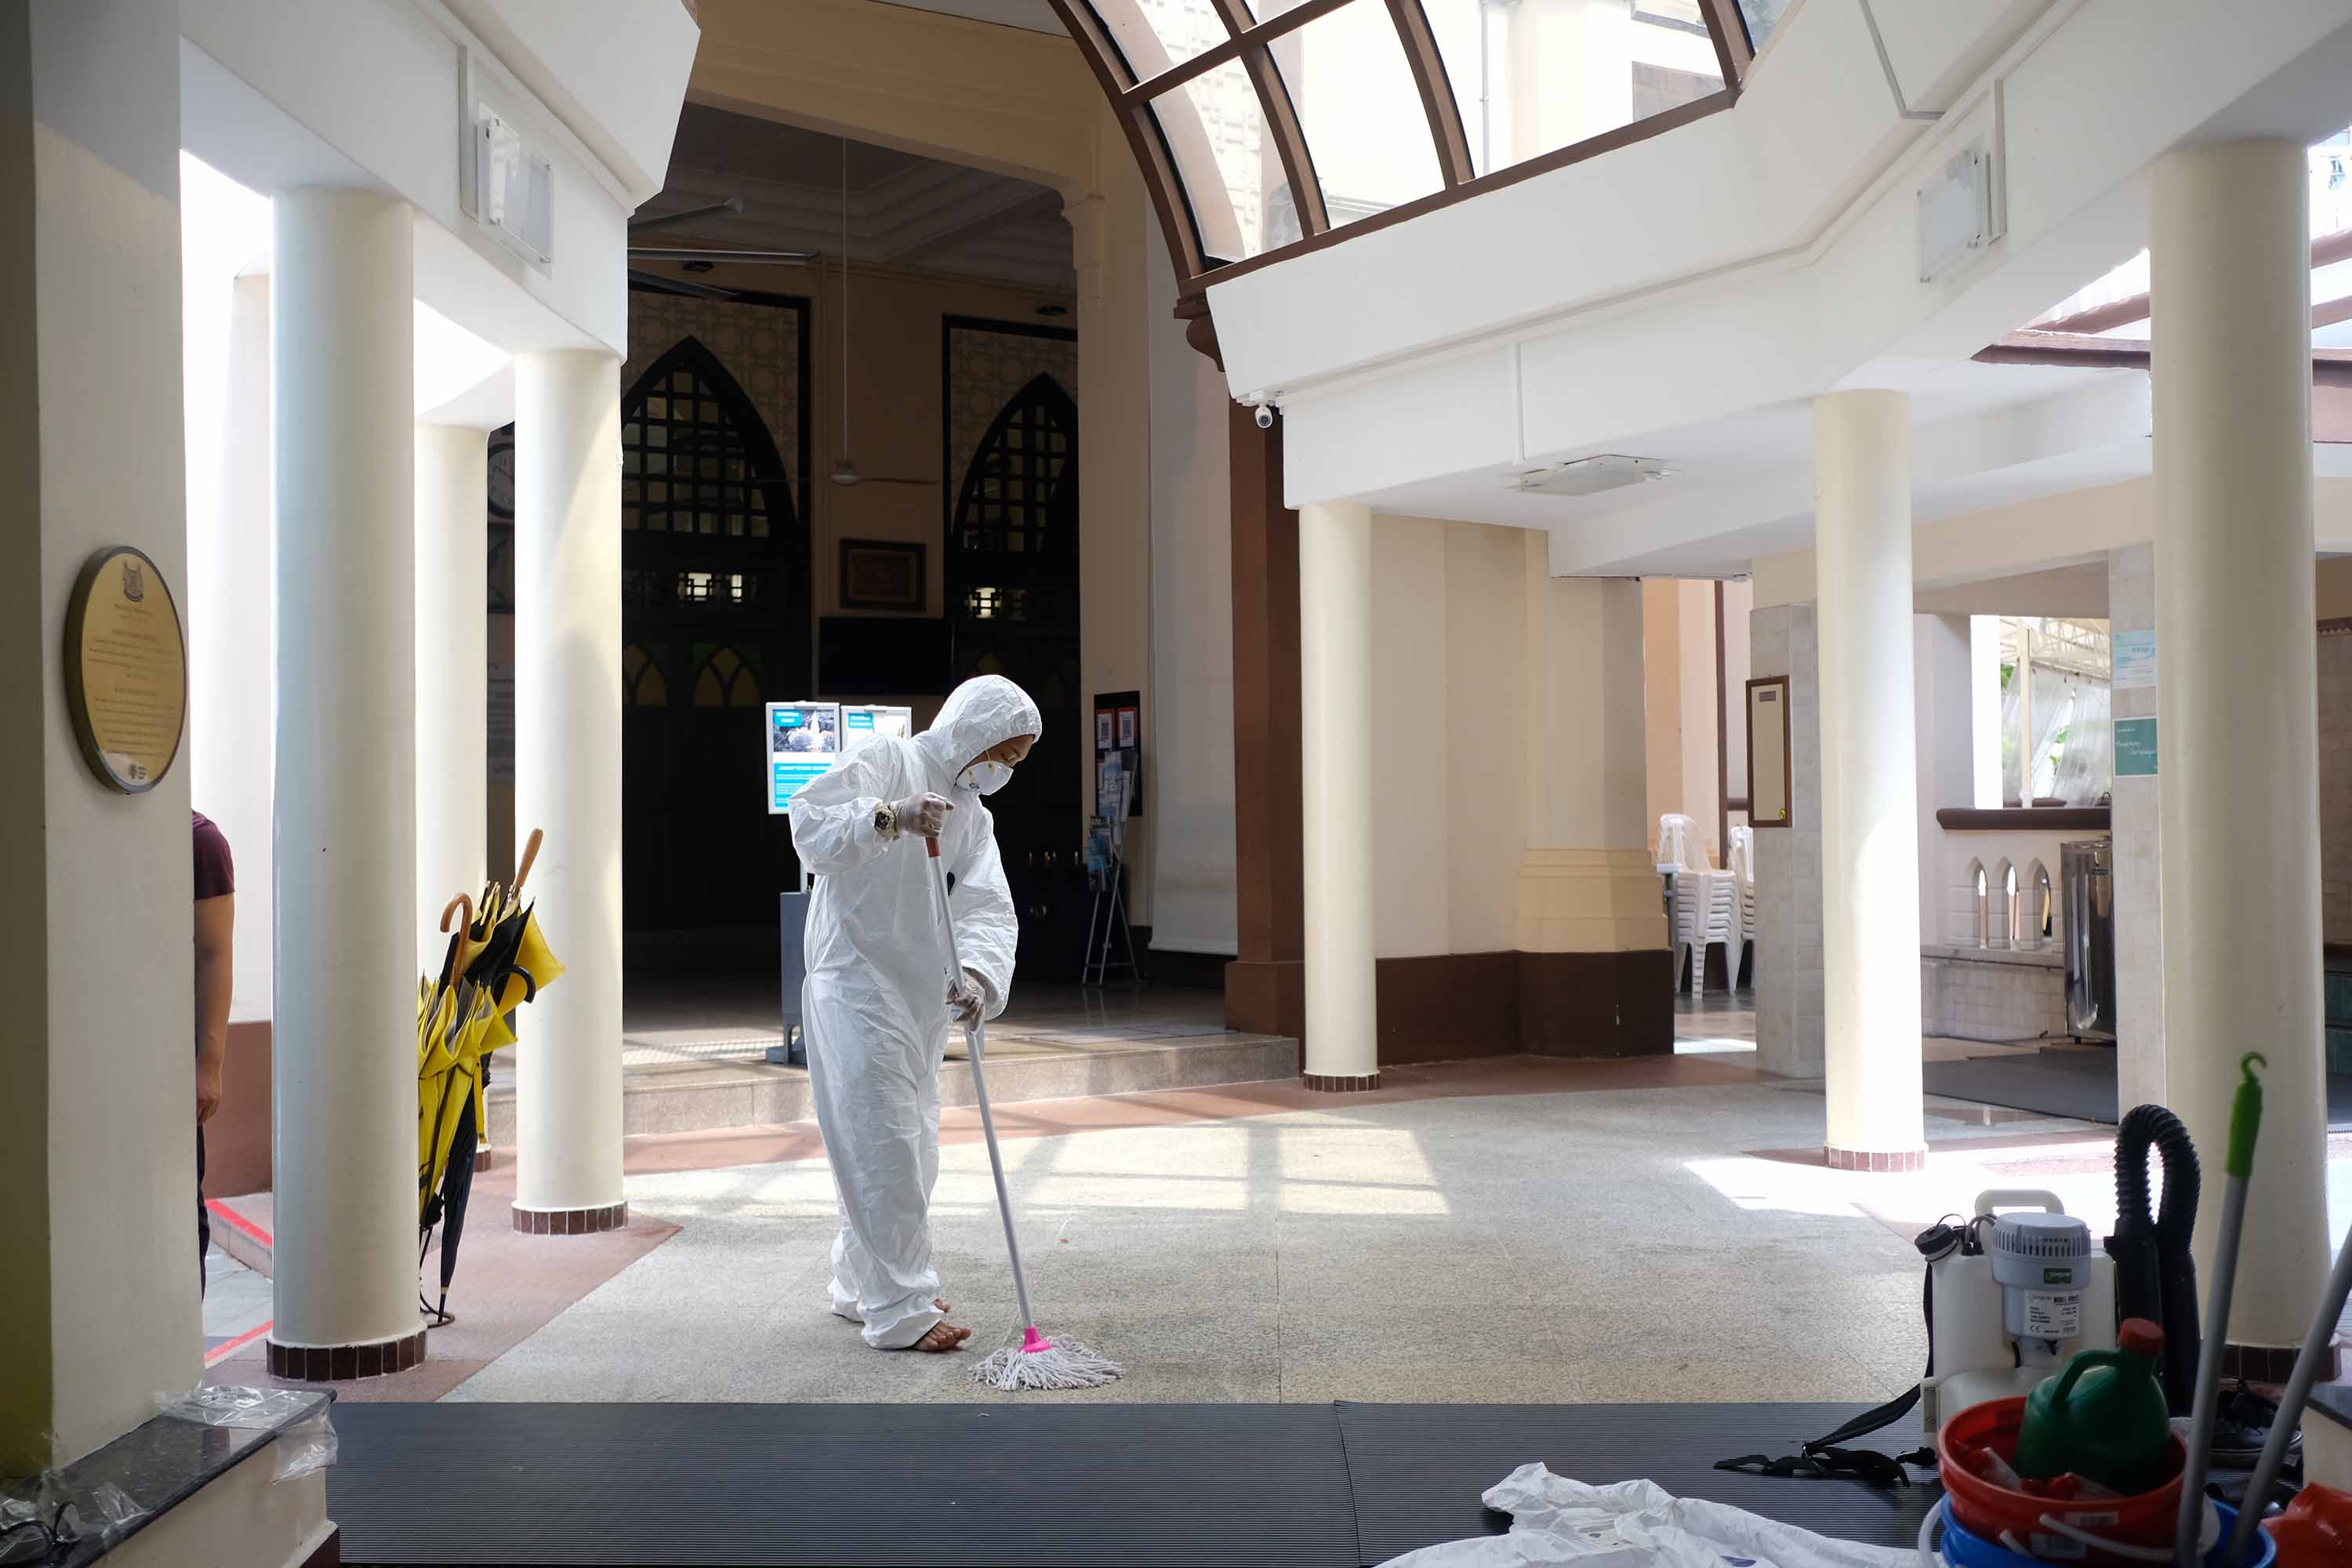 A working wearing protective gear mops the floor inside the Hajjah Fatimah mosque in Singapore on March 13.